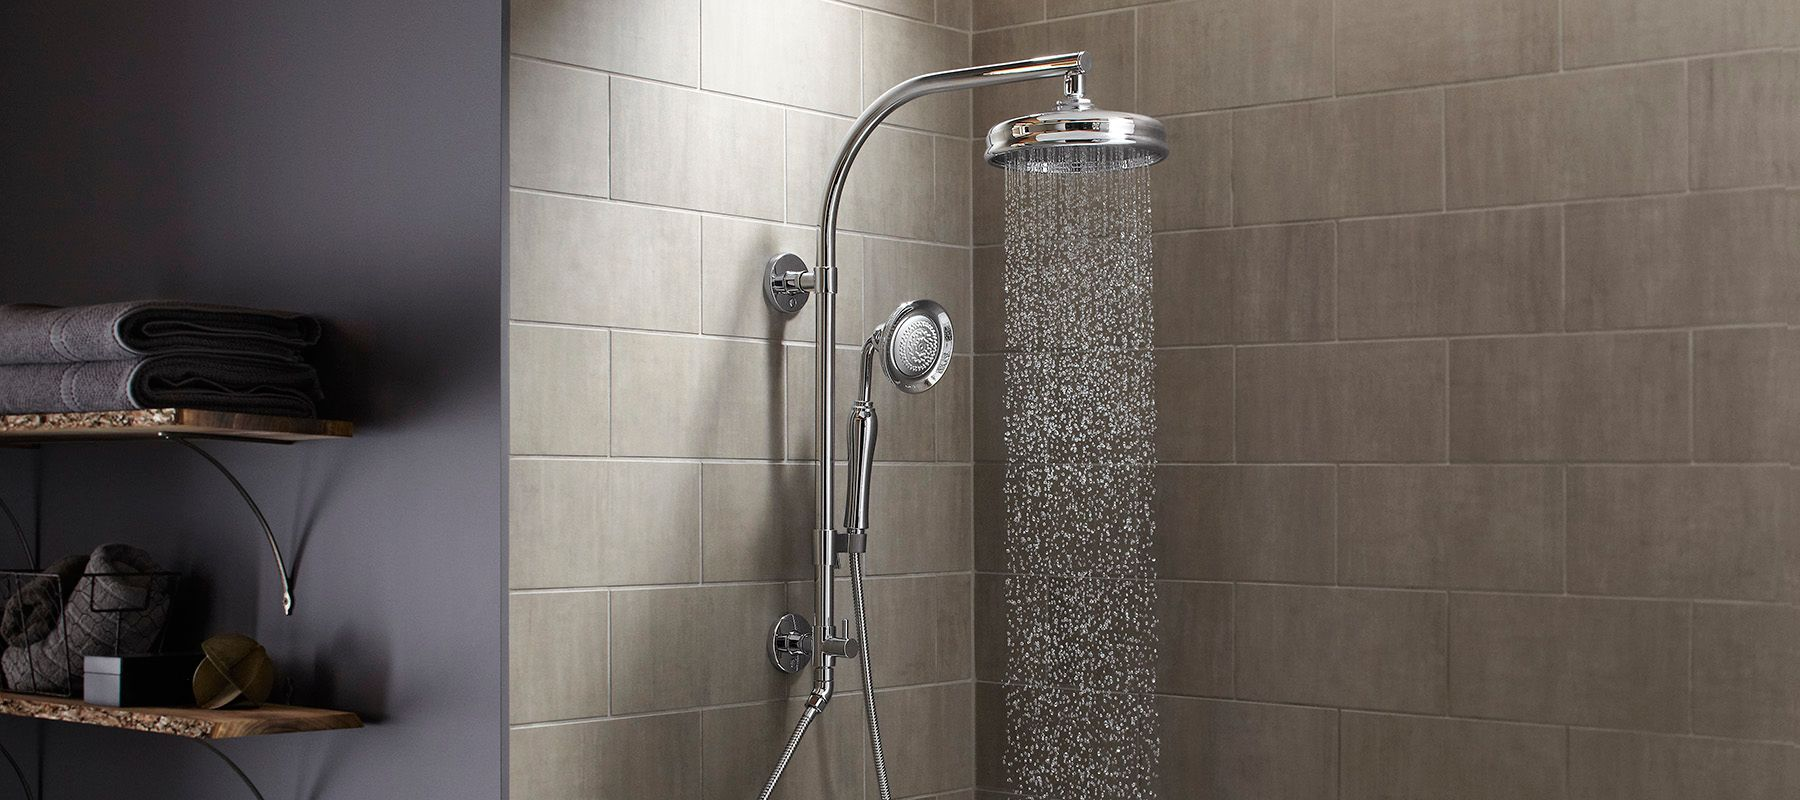 Can A Shower Count For Wudu